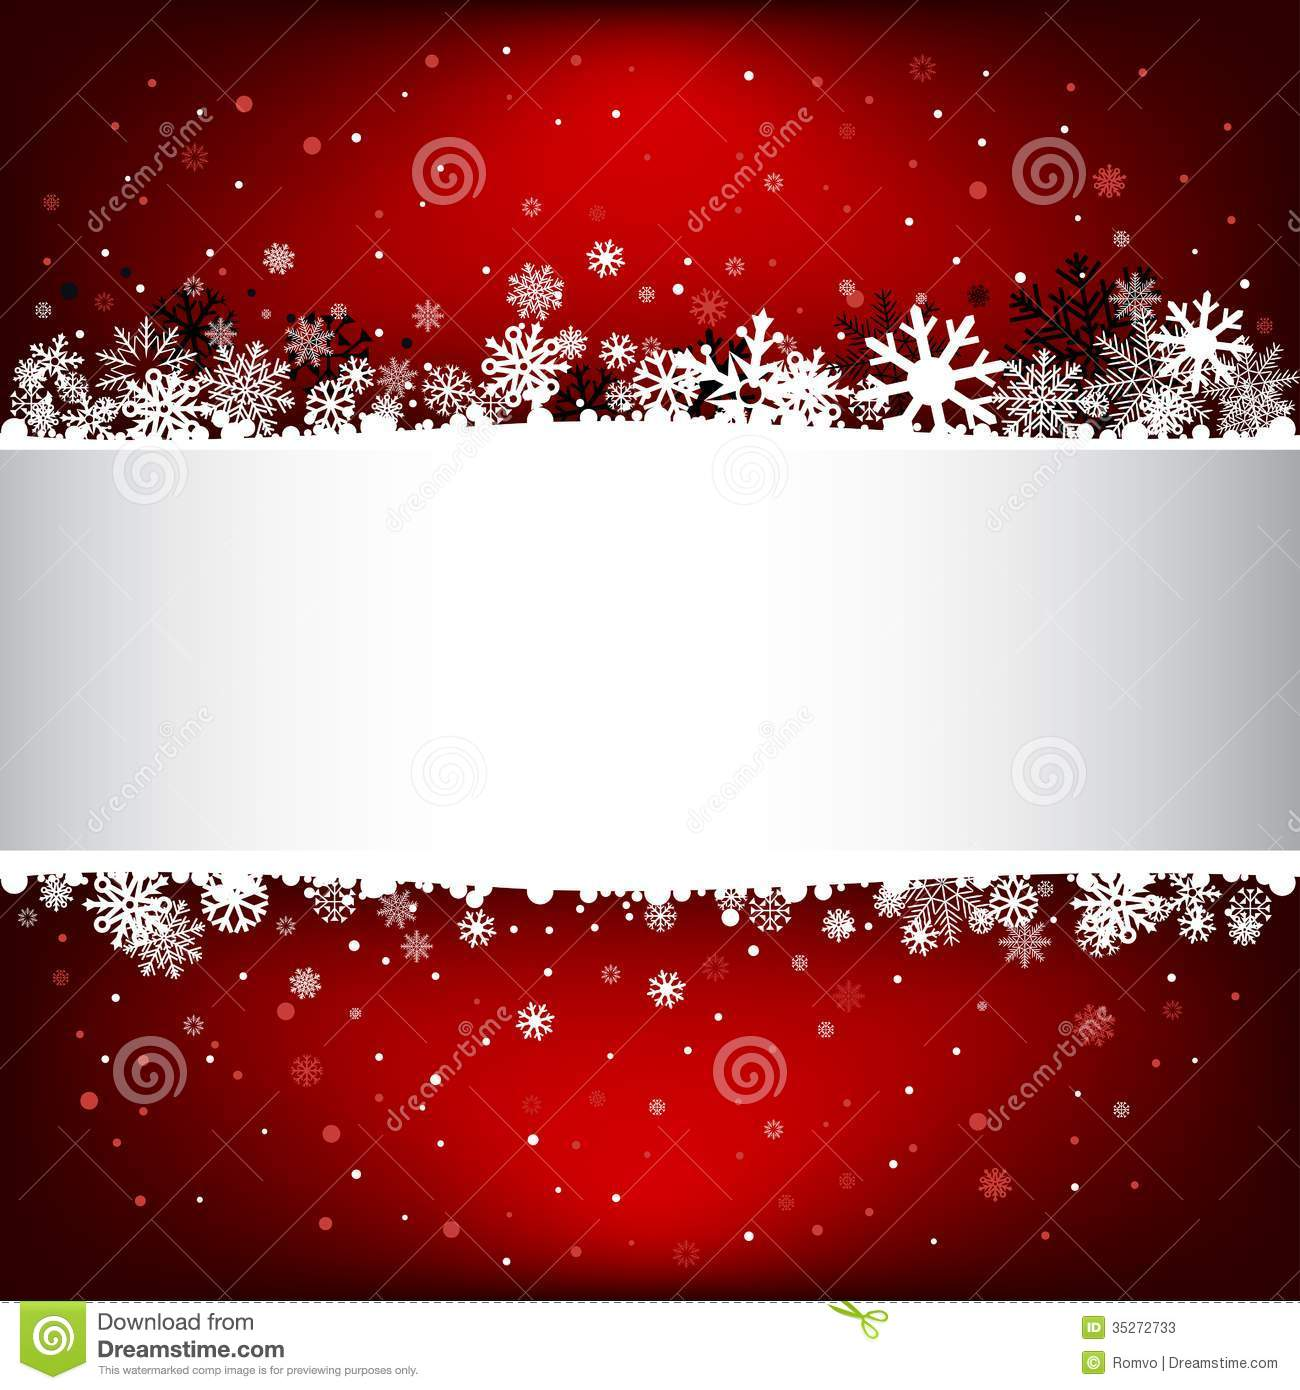 red snow christmas background - photo #22